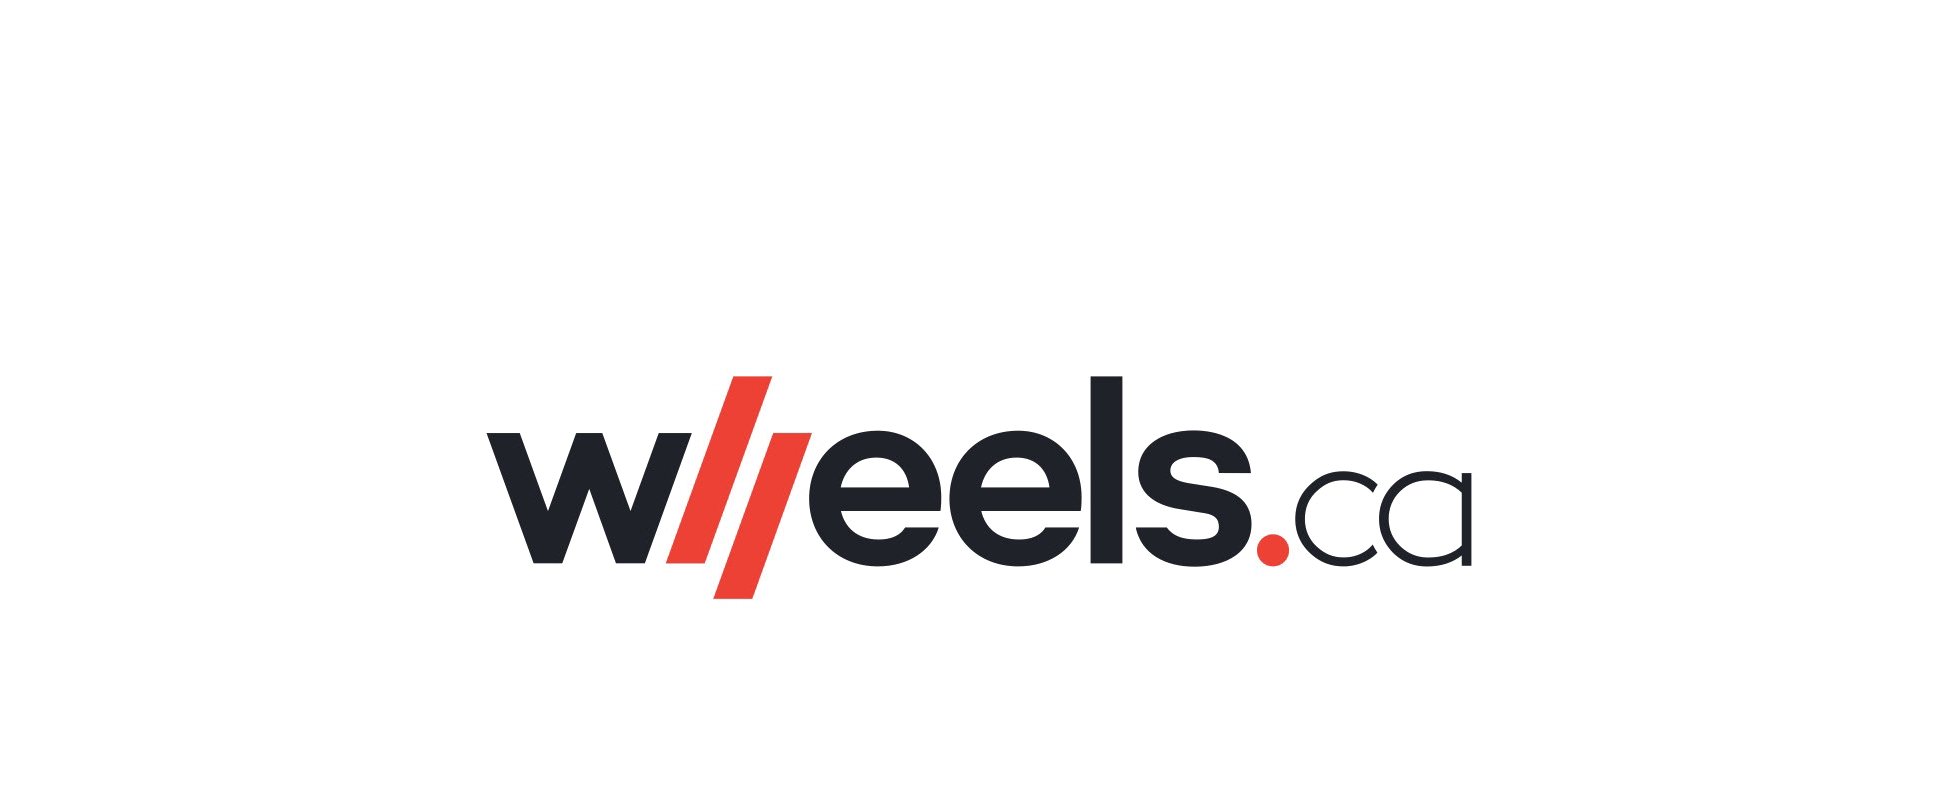 Wheels.ca.png